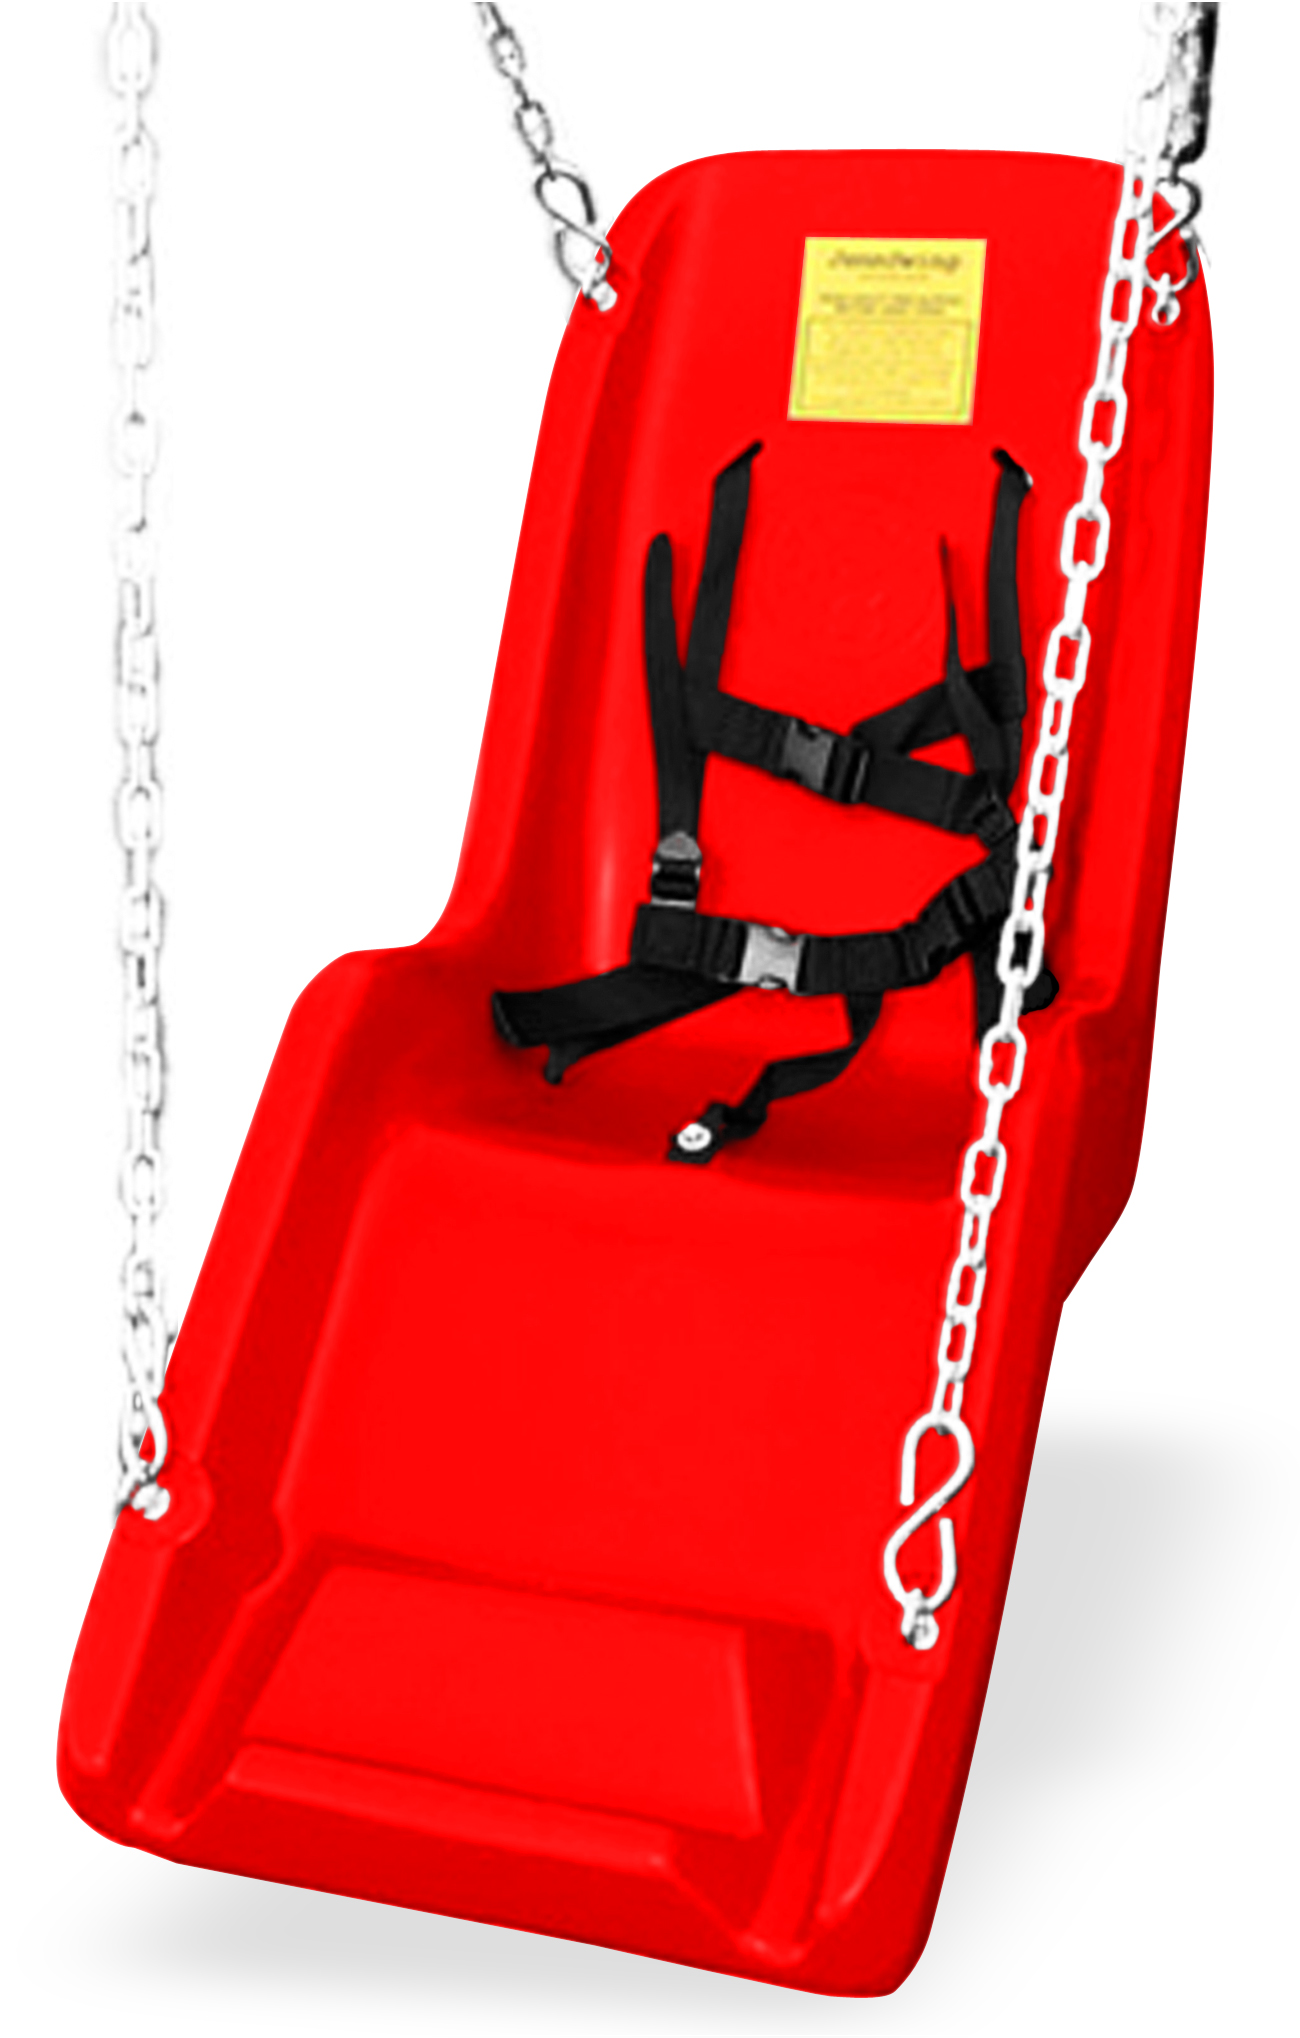 Special Needs Swing Seat Full Support Swing Seat